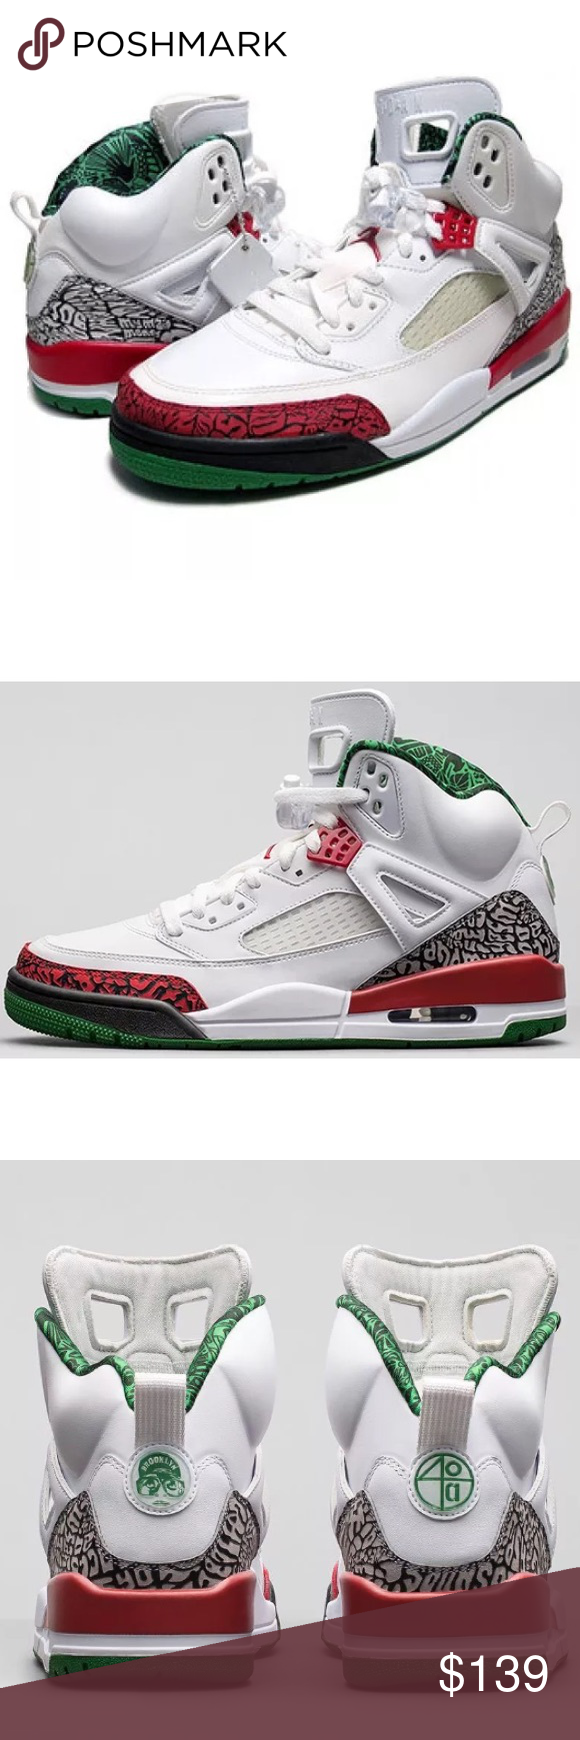 NWOT Nike Air Jordan Spizike White Red Green (With images